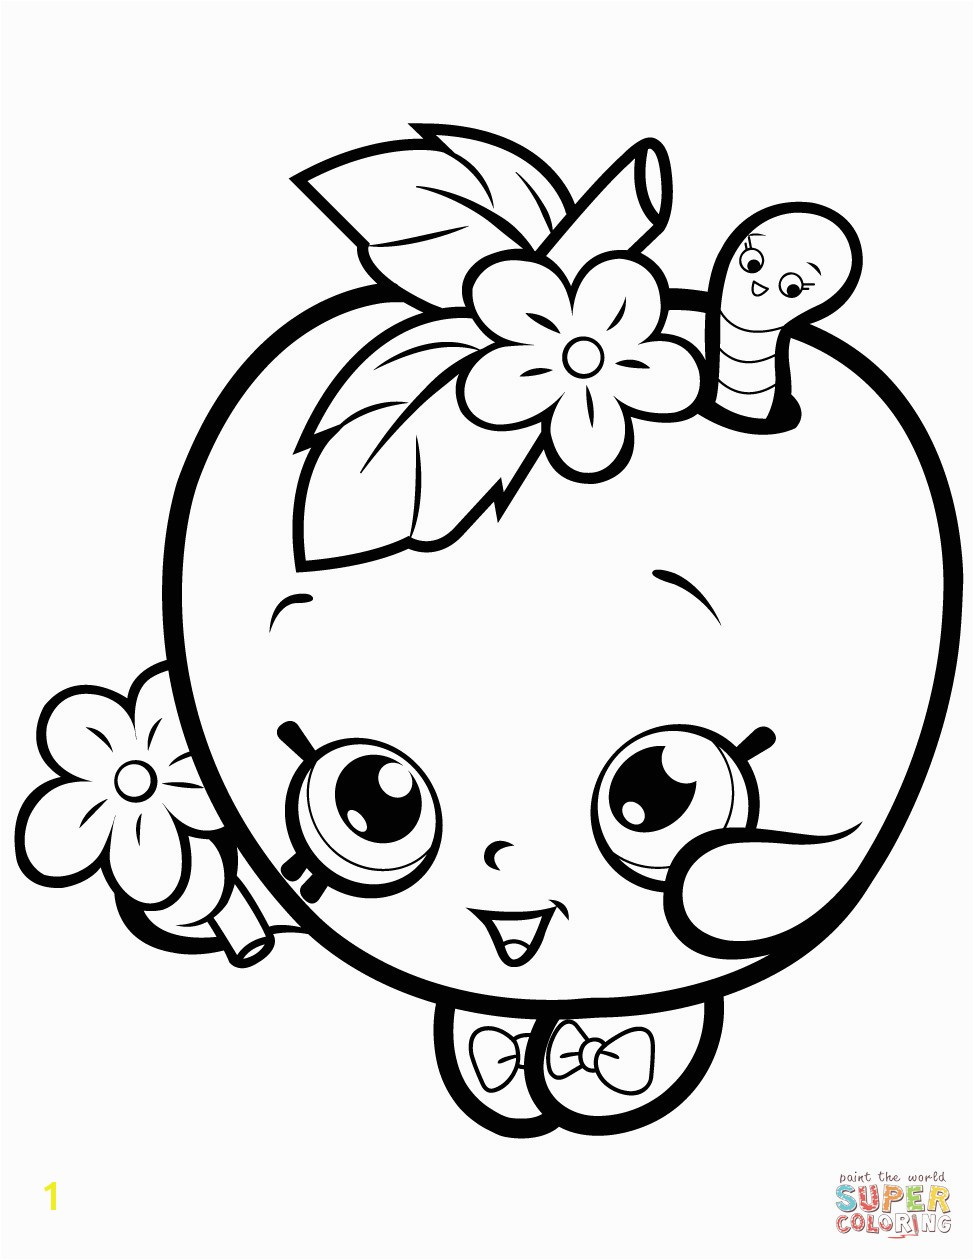 Apple Blossom Shopkin Coloring Page Shopkins Printable Coloring Pages Elegant New Eazy E Coloring Pages